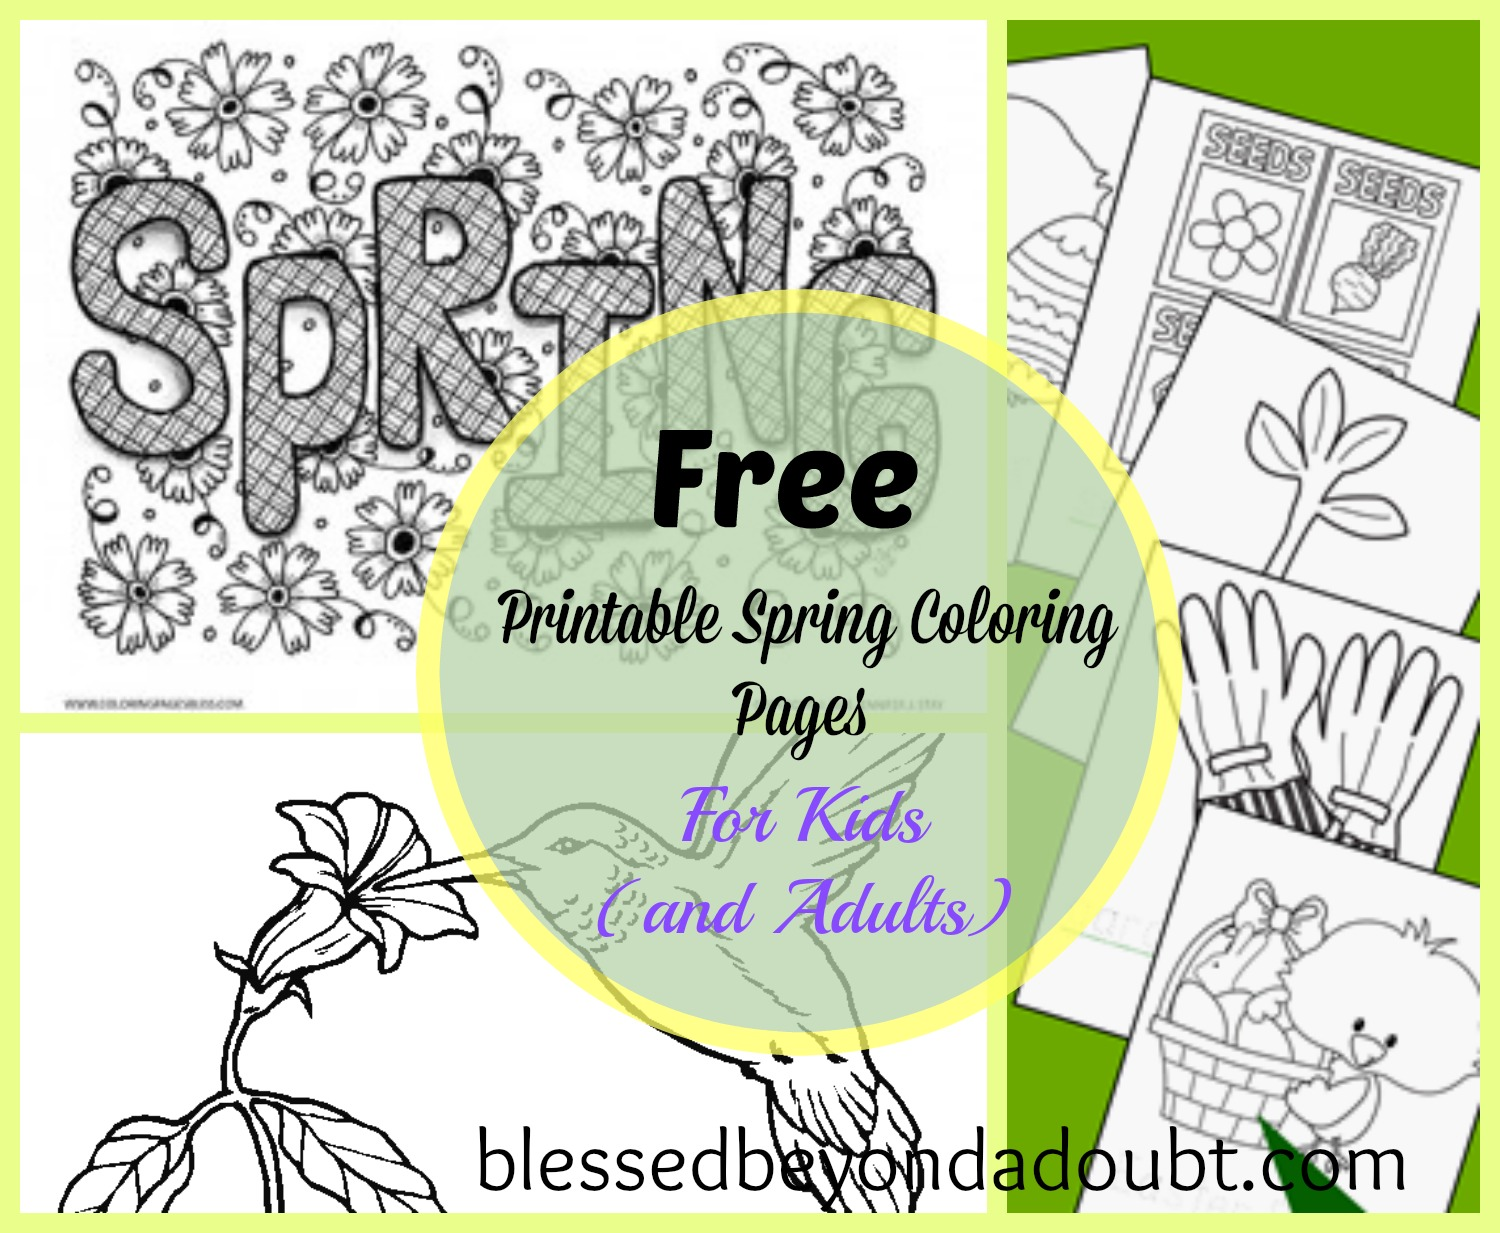 20 Free Printable Spring Coloring Sheets For Kids And